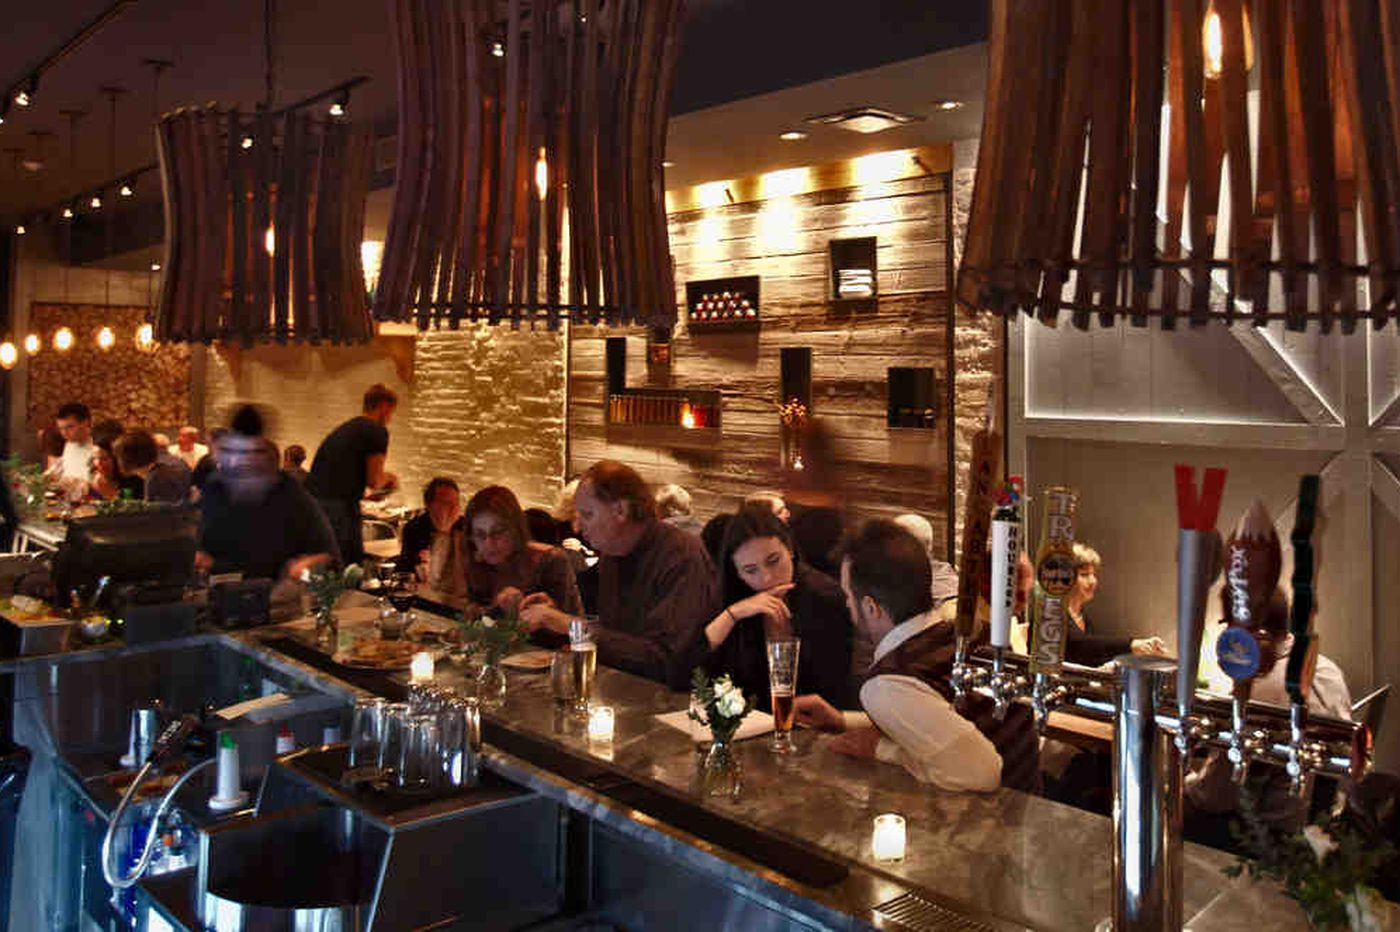 Safran Turney restaurants to pay $252,500 to settle wage-tip lawsuit